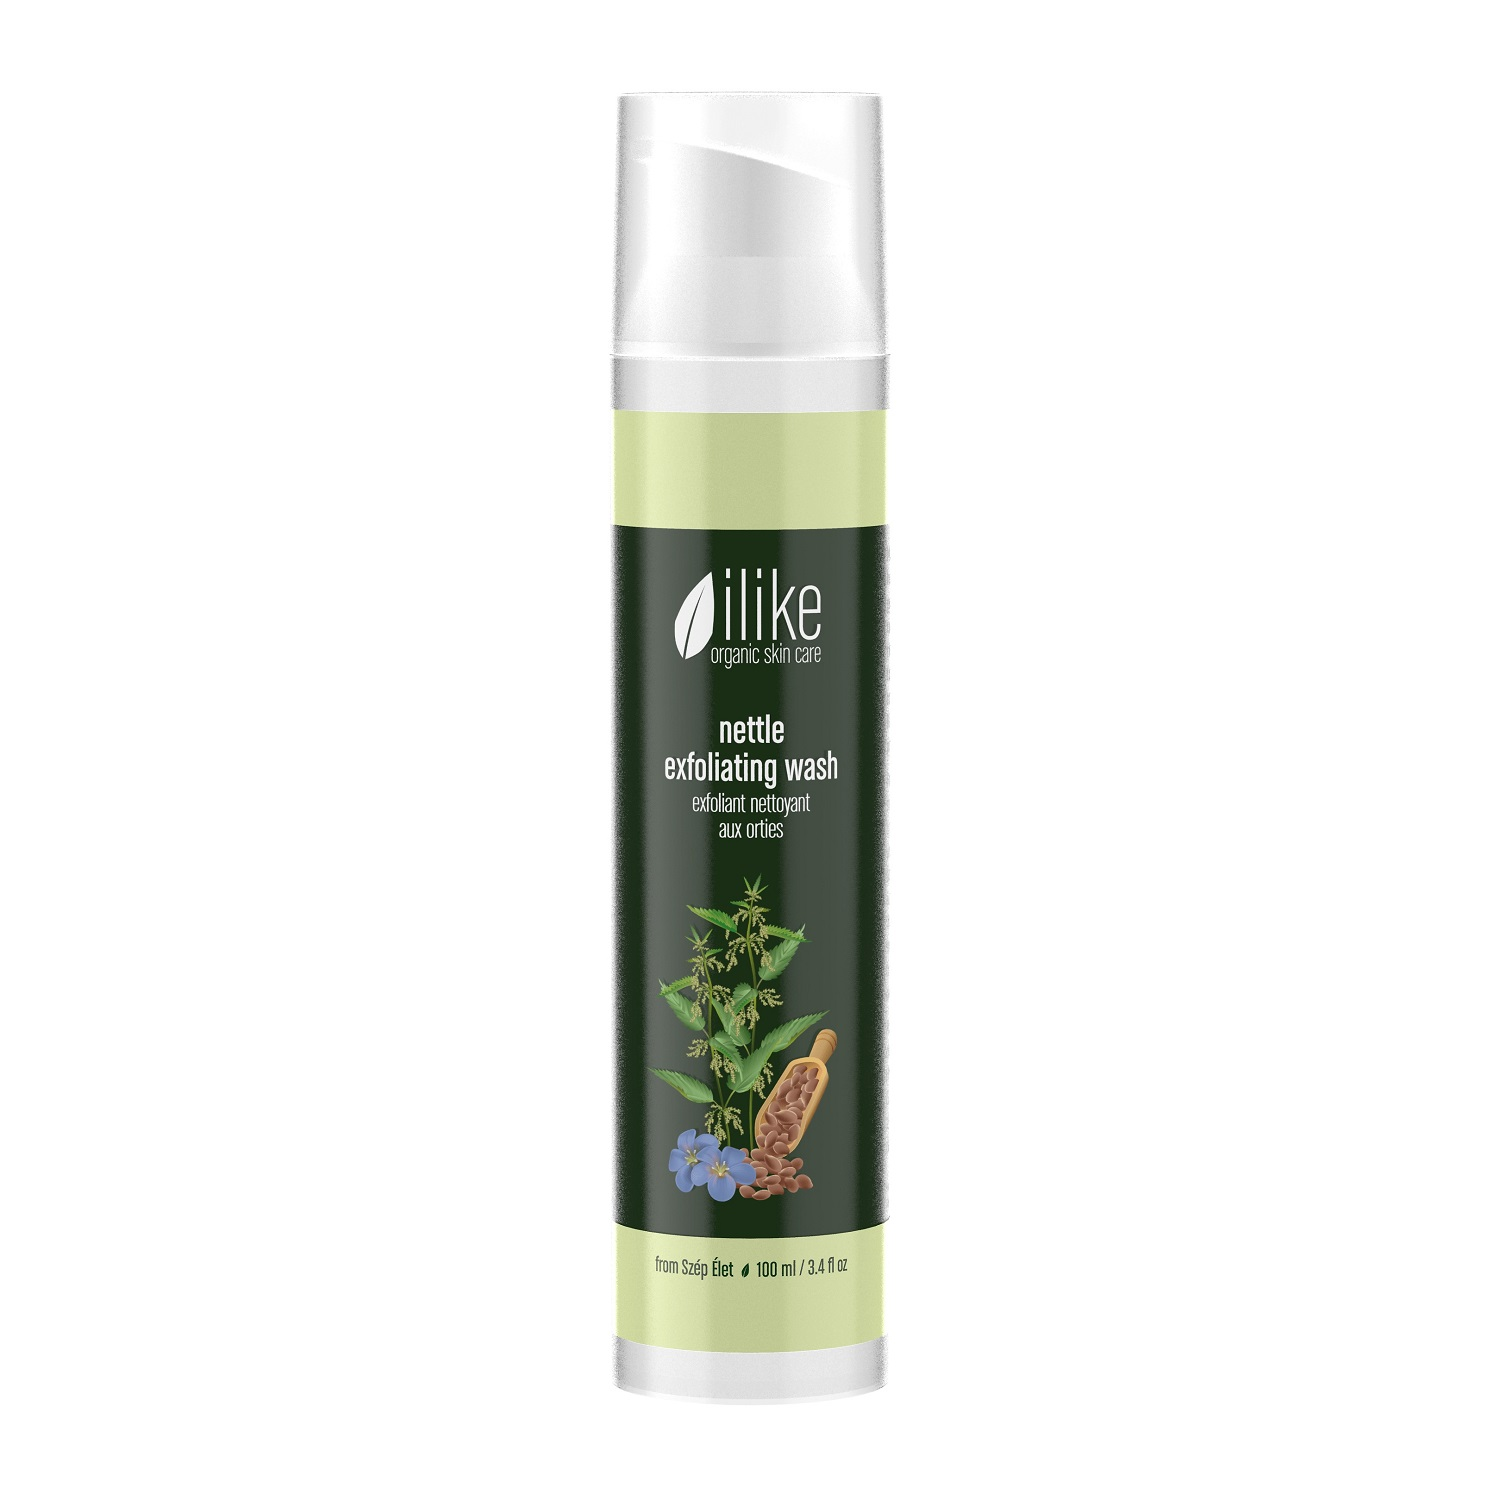 ilike organic skincare nettle exfoliating wash (100 ml / 3.4 fl oz)